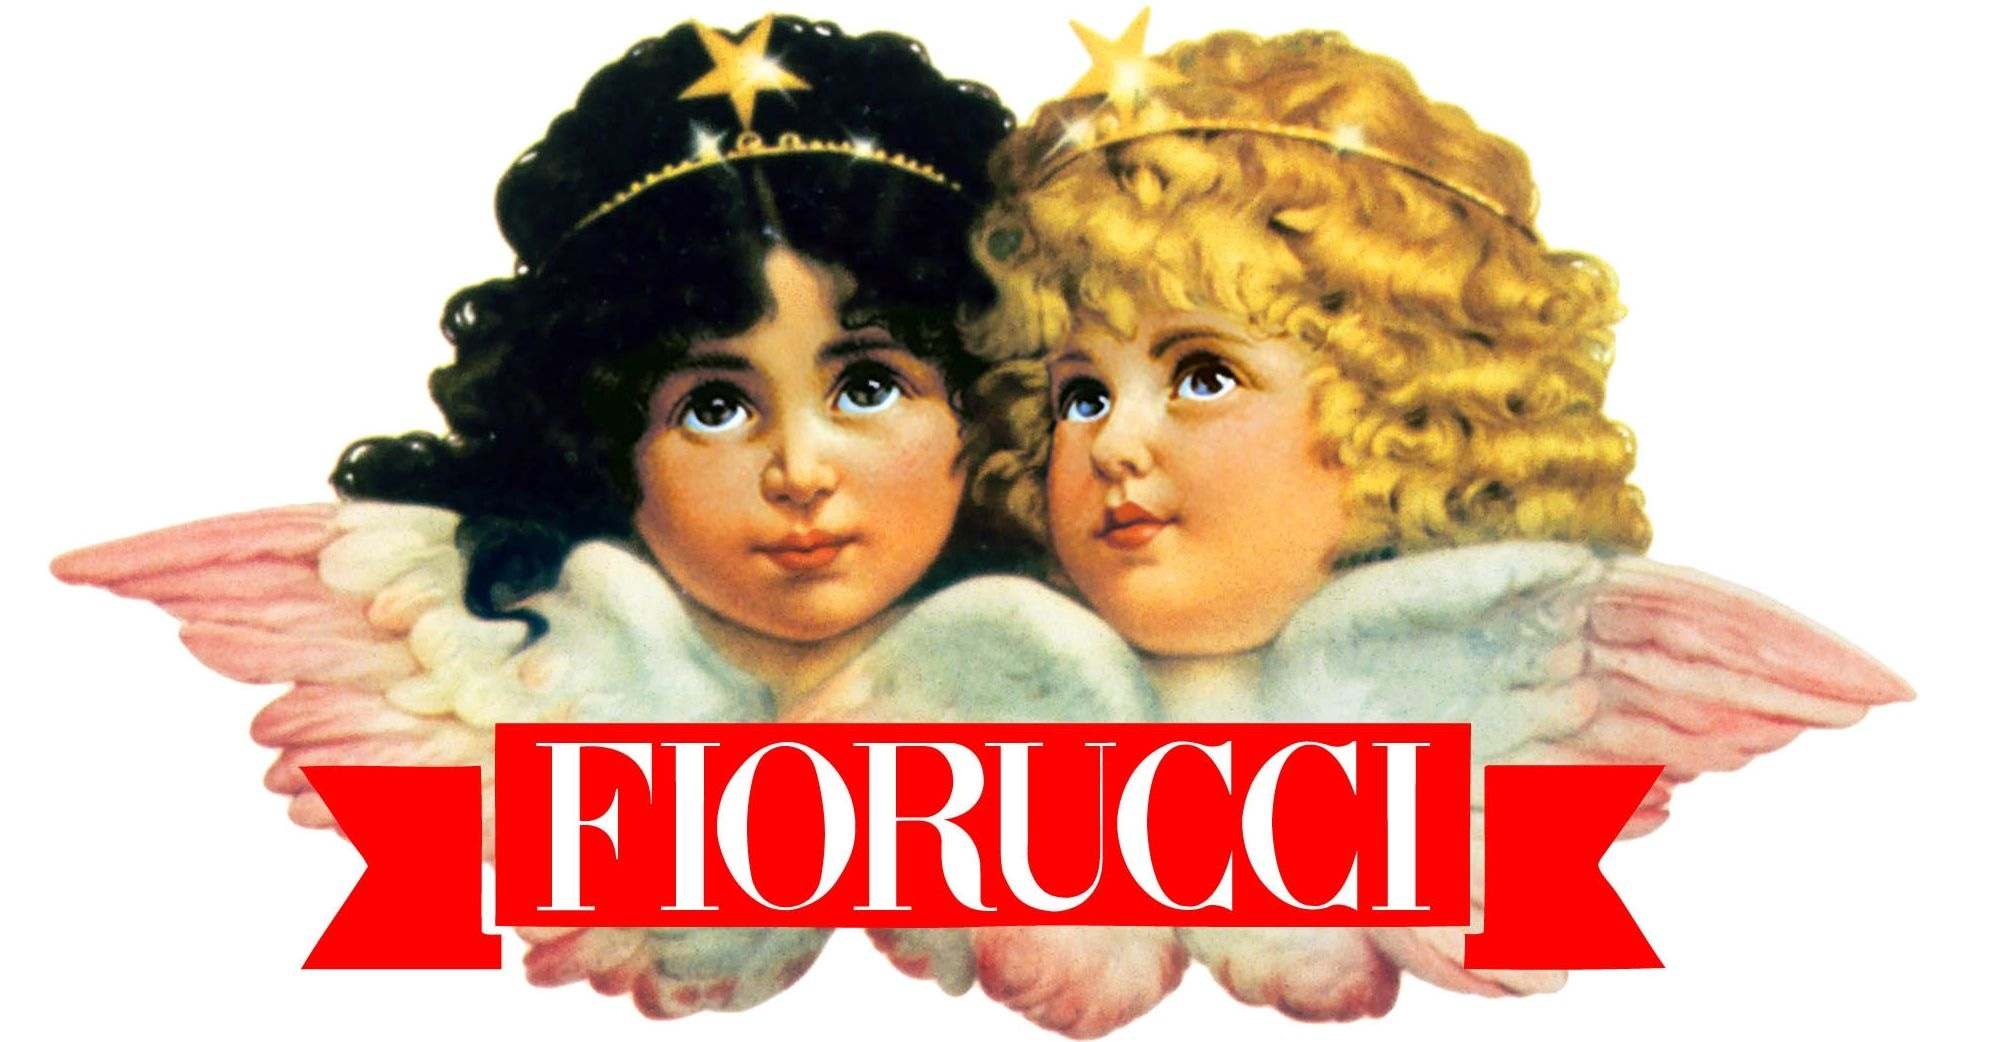 Shop fiorucci.it